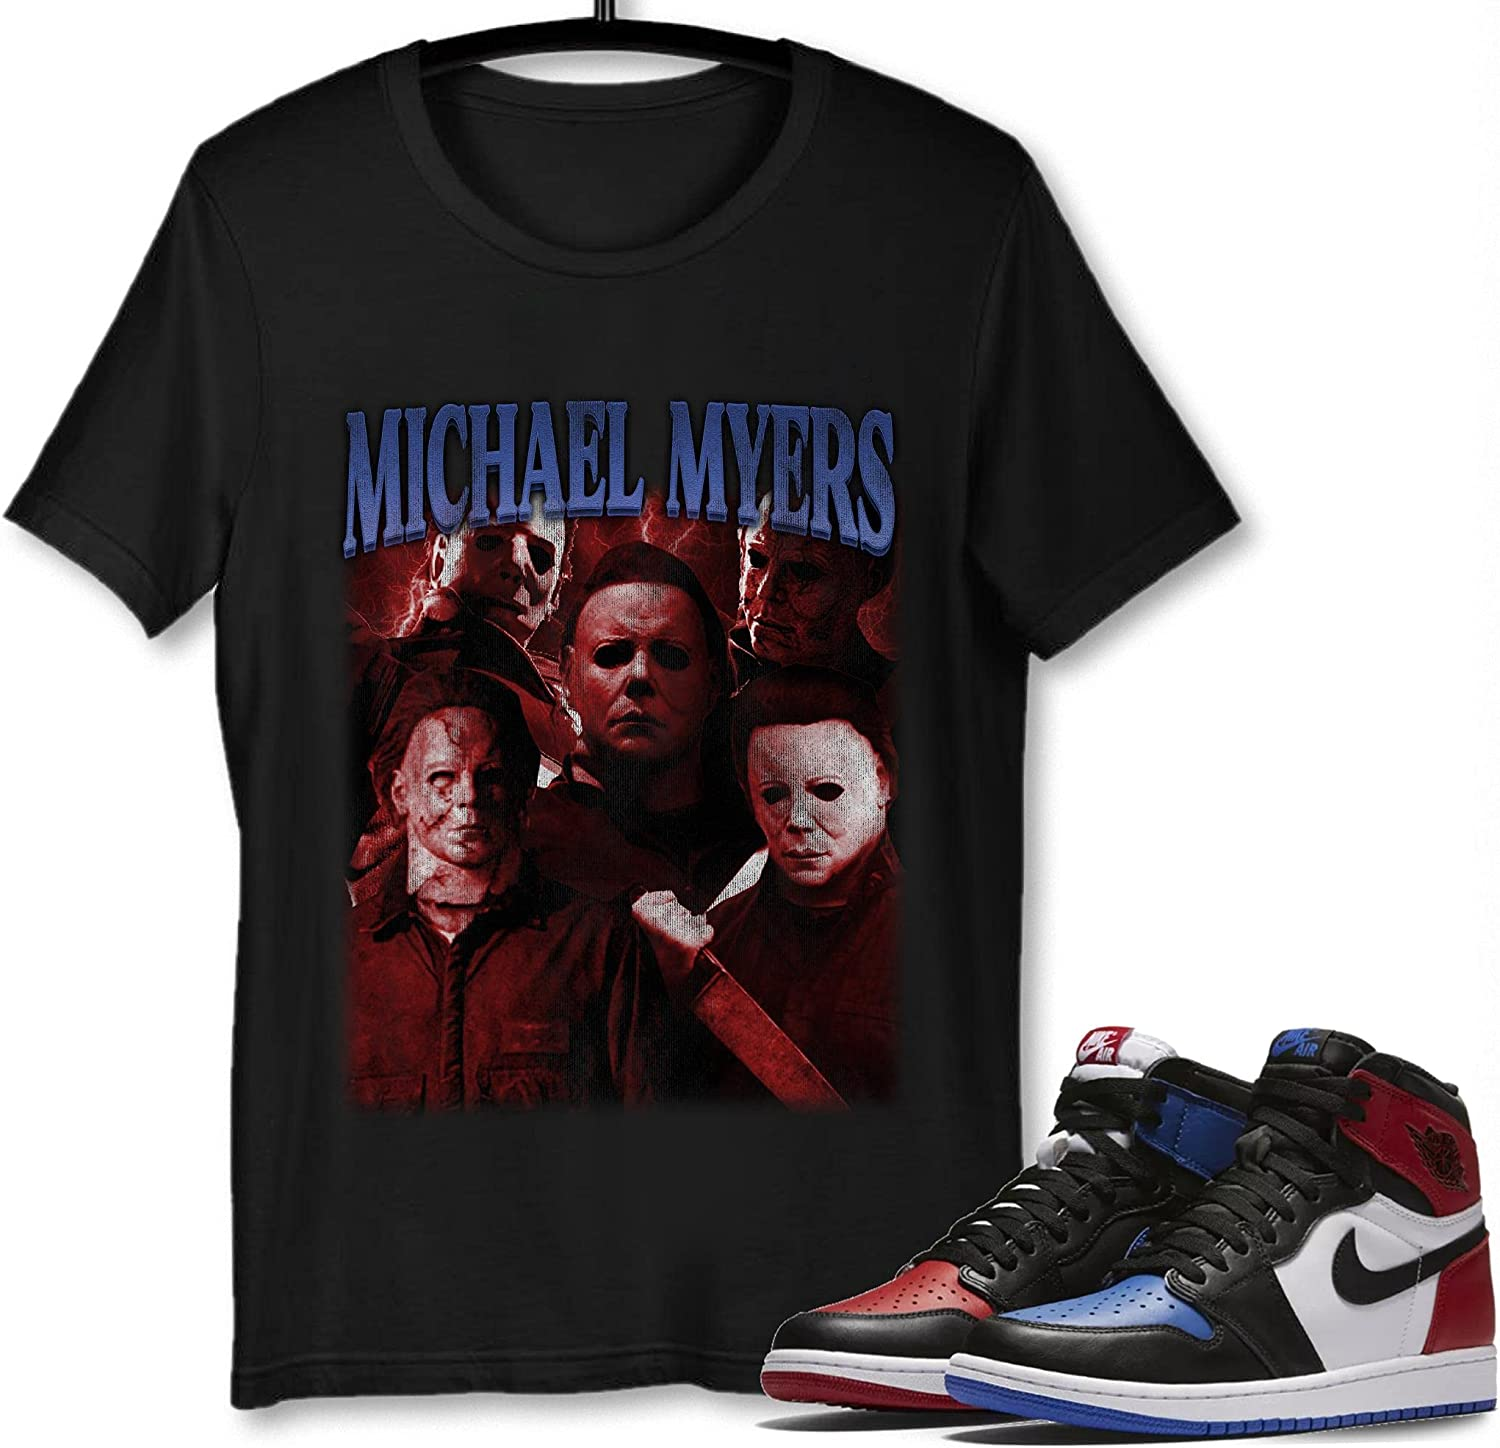 #Michael #Myer Same day shipping Shirt to Match Jordan 1 3 Me Sneaker for Gift Top price